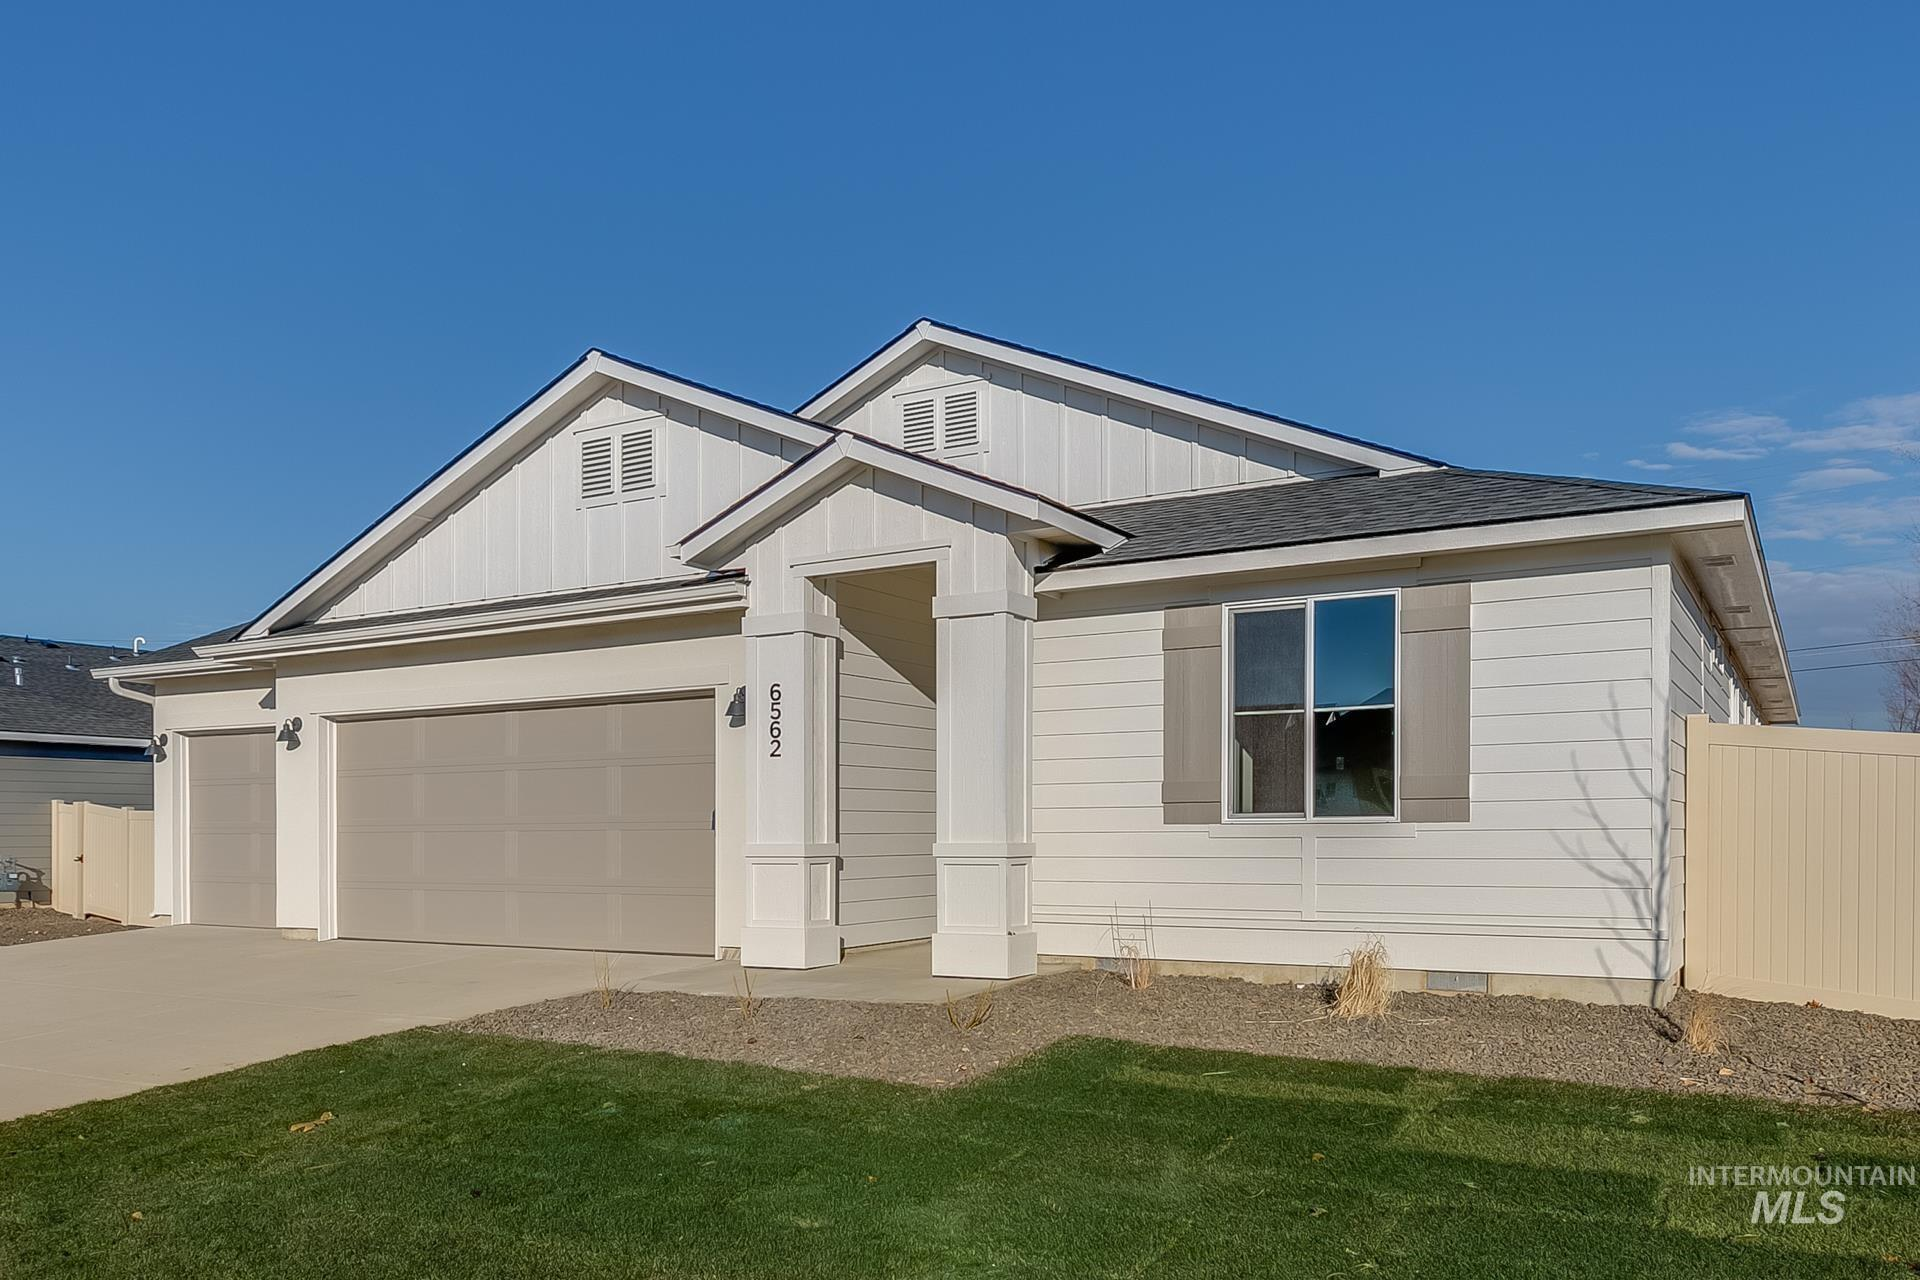 1344 W Pendulum Cove Dr Property Photo - Kuna, ID real estate listing